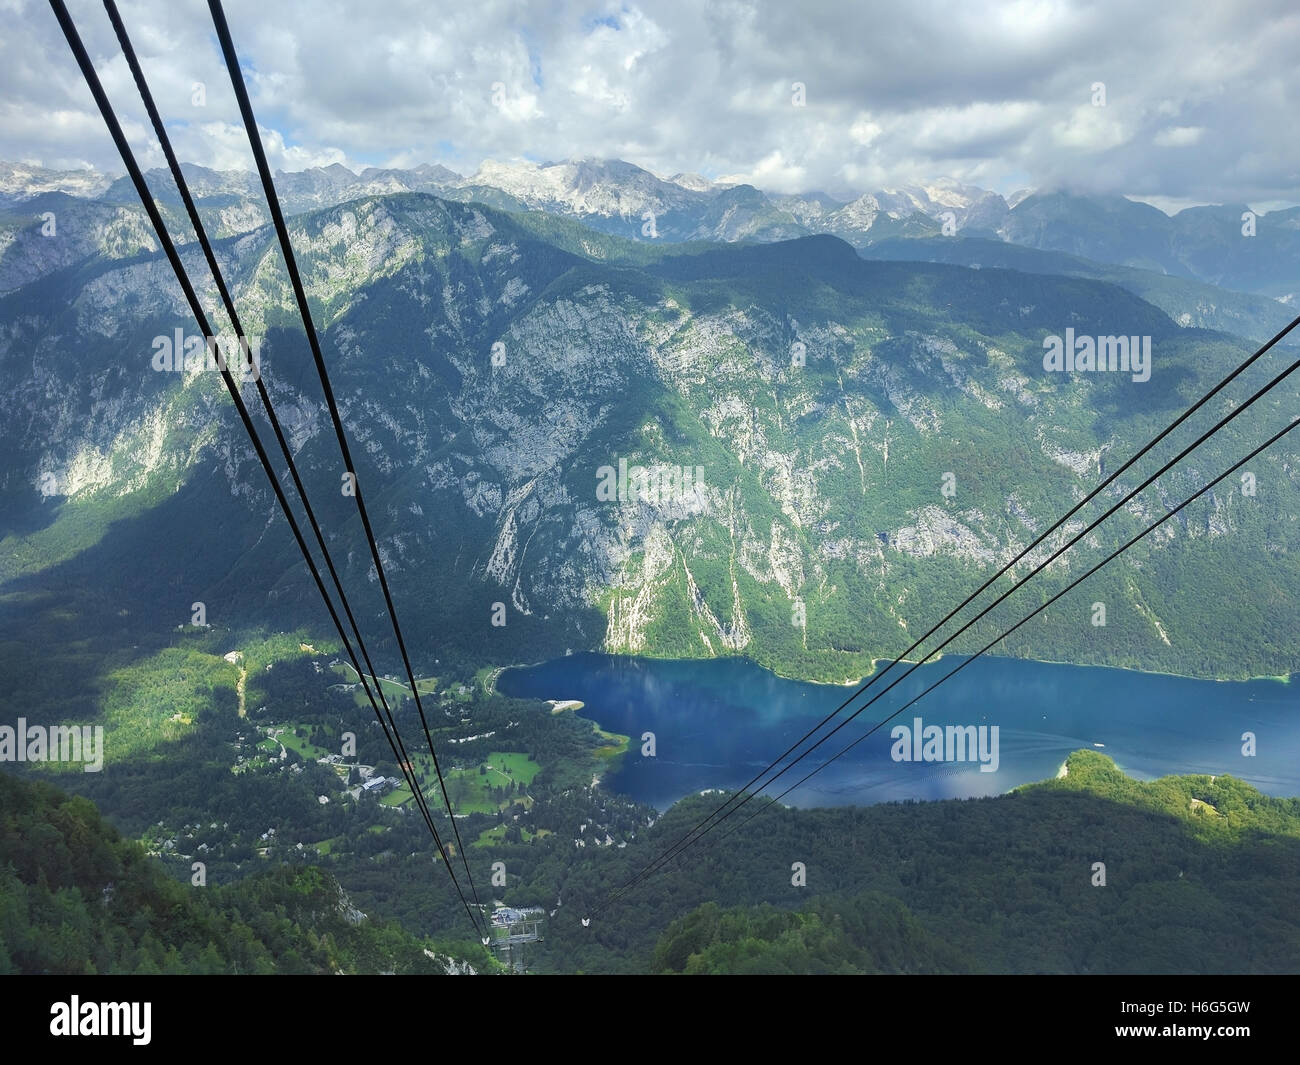 Cable car goes up to the top of the mountain Vogel in Bohinj, Slovenia - Stock Image